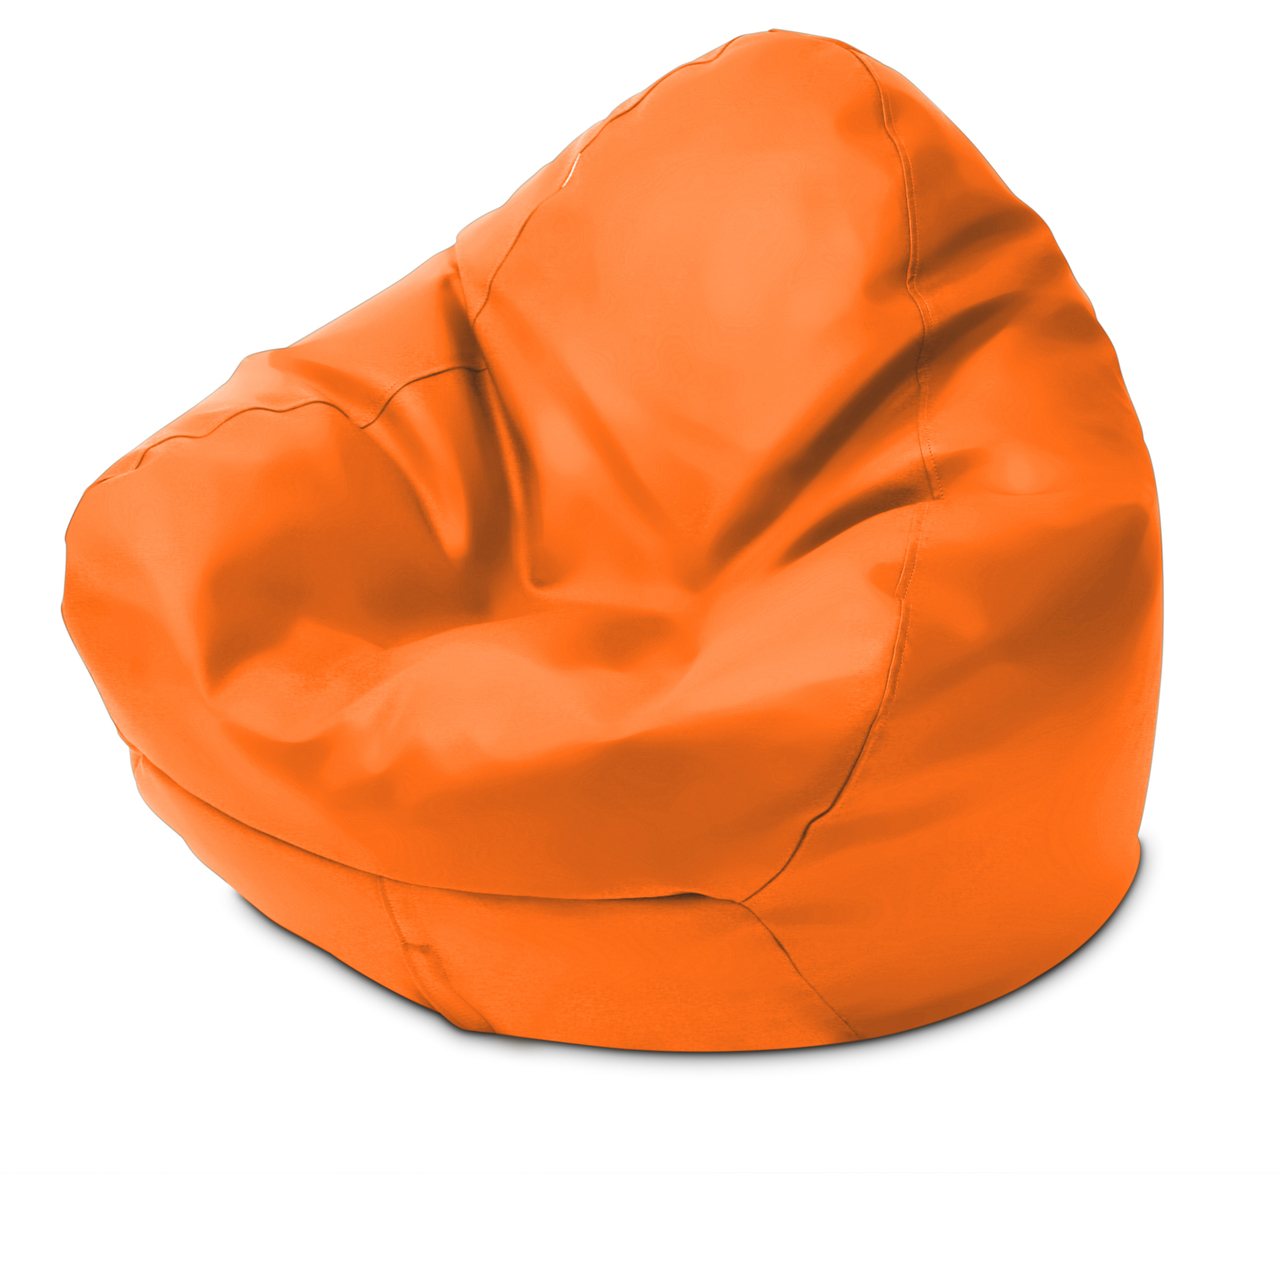 Classic Queen Size Bean Bag in orange